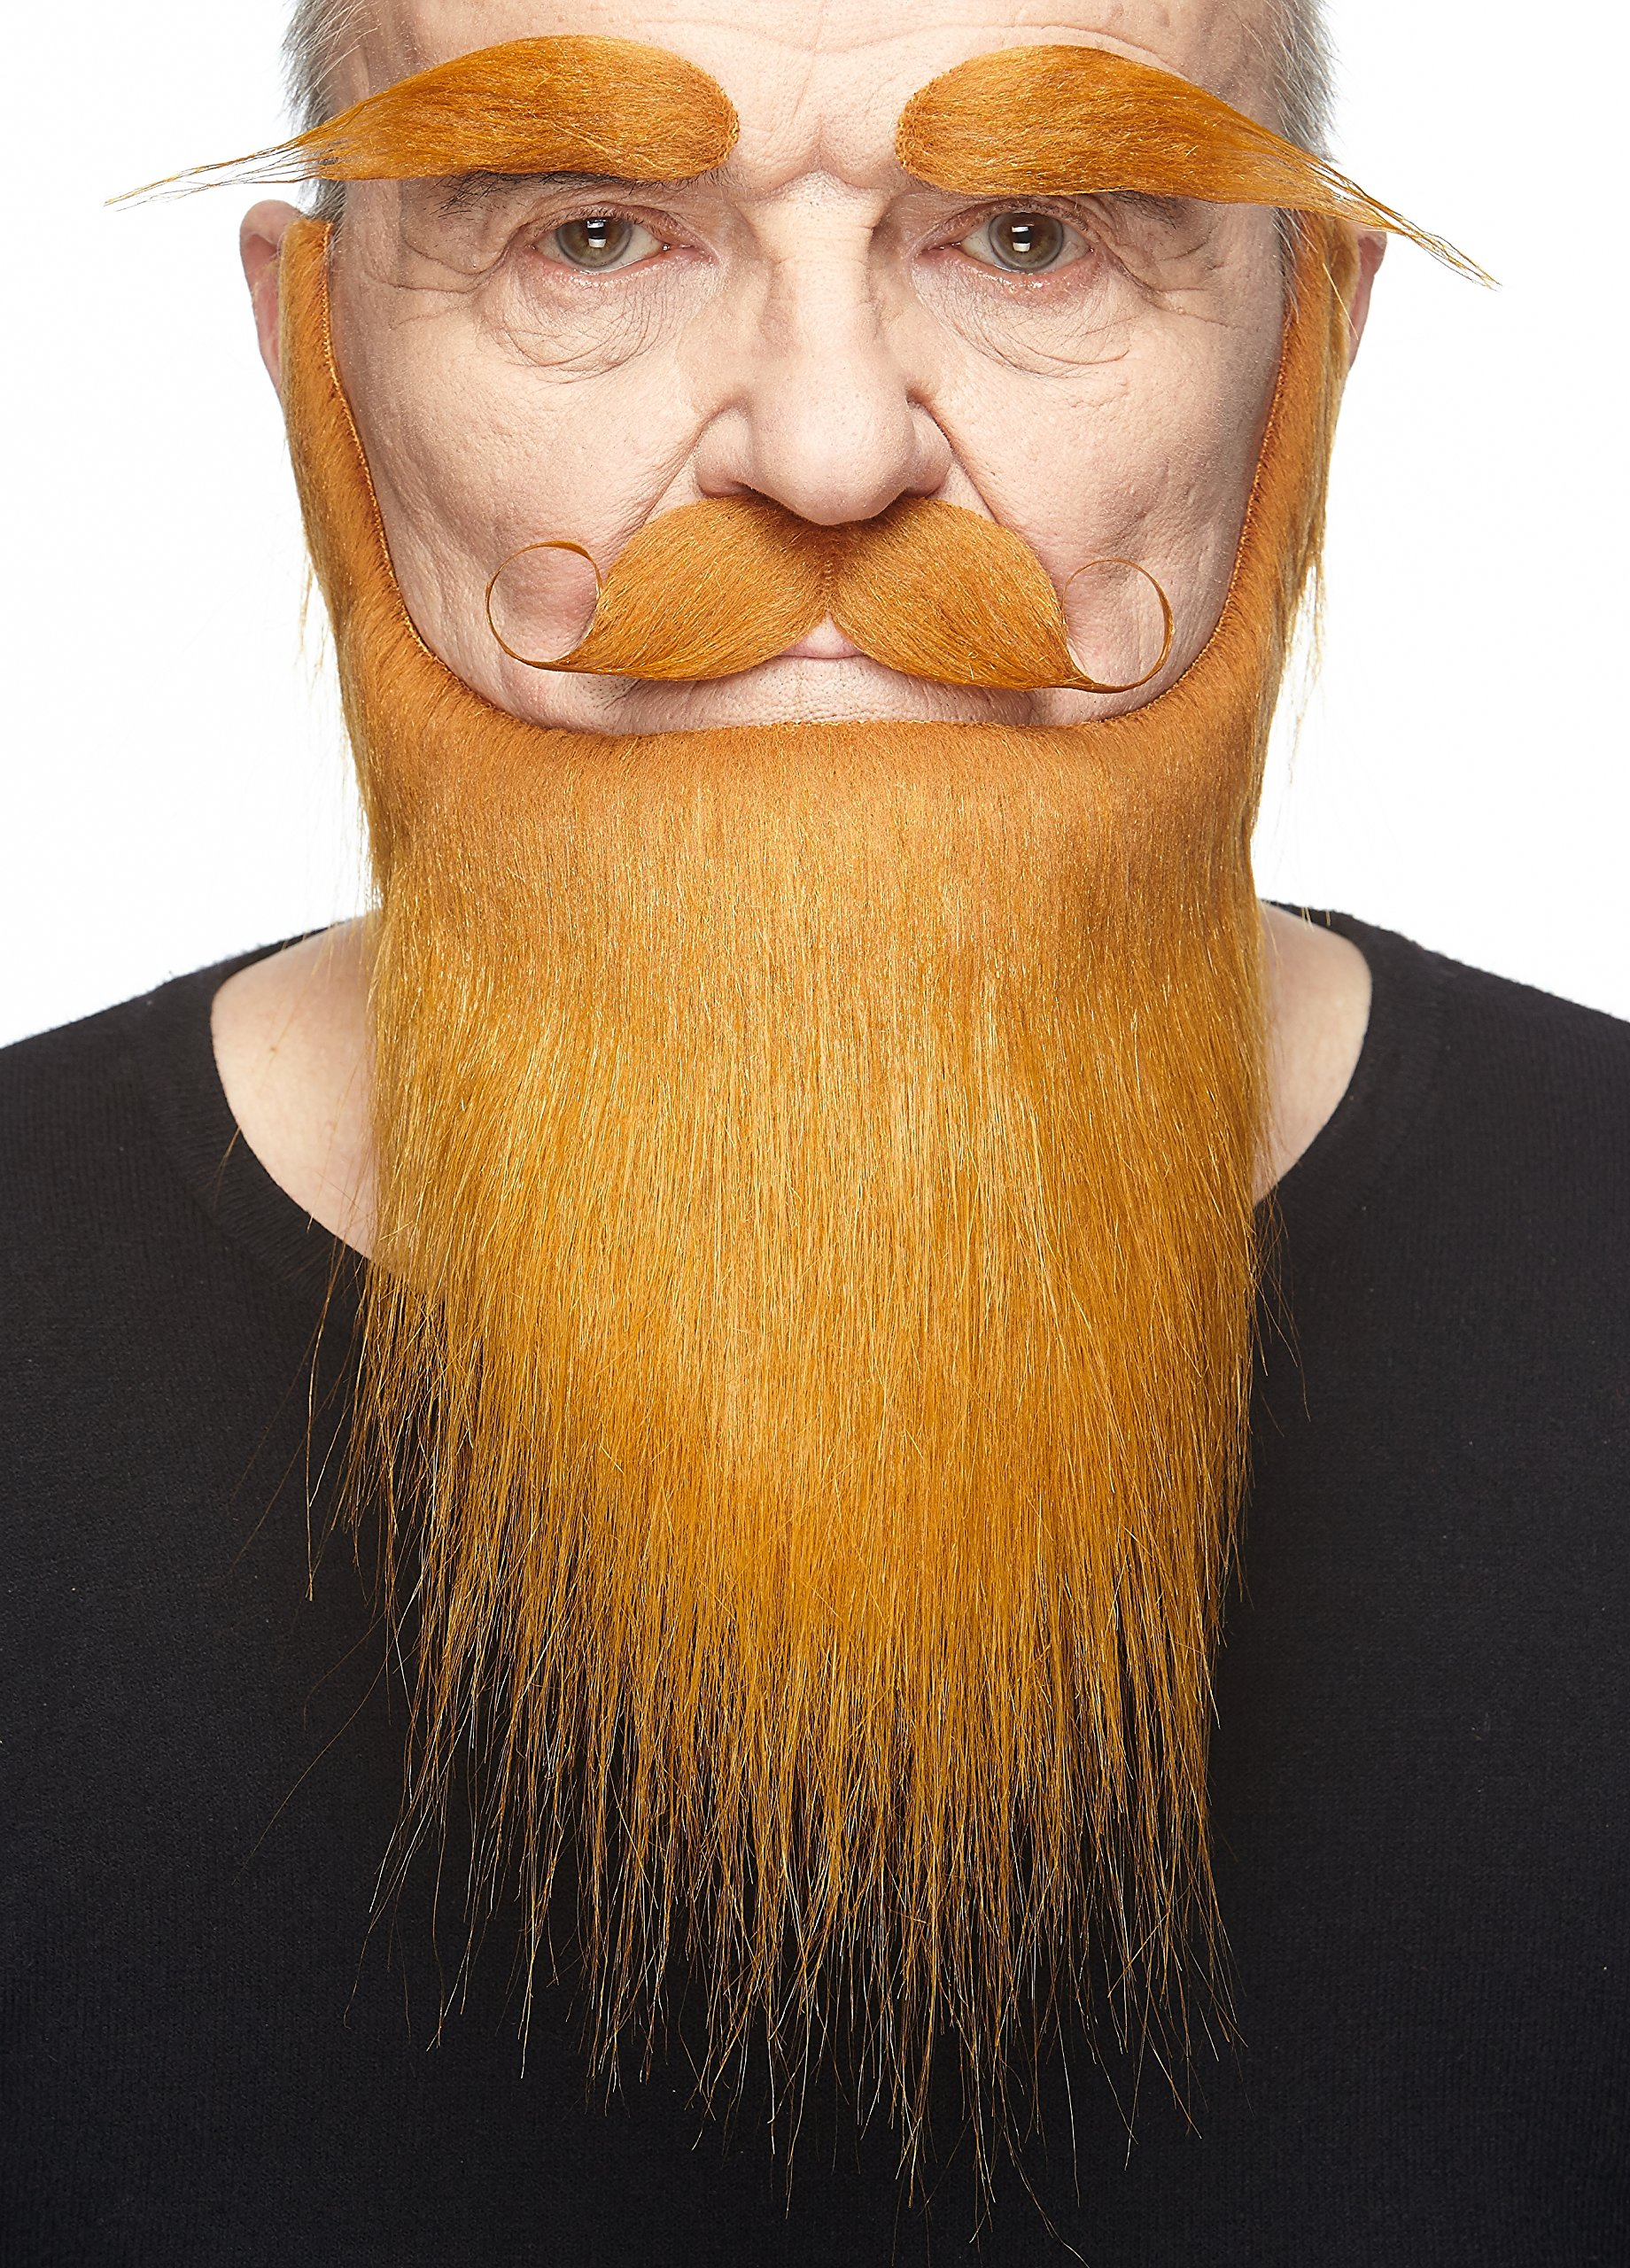 Mustaches Self Adhesive, Novelty, Fake Medieval King Beard, and Eyebrows, Ginger Color